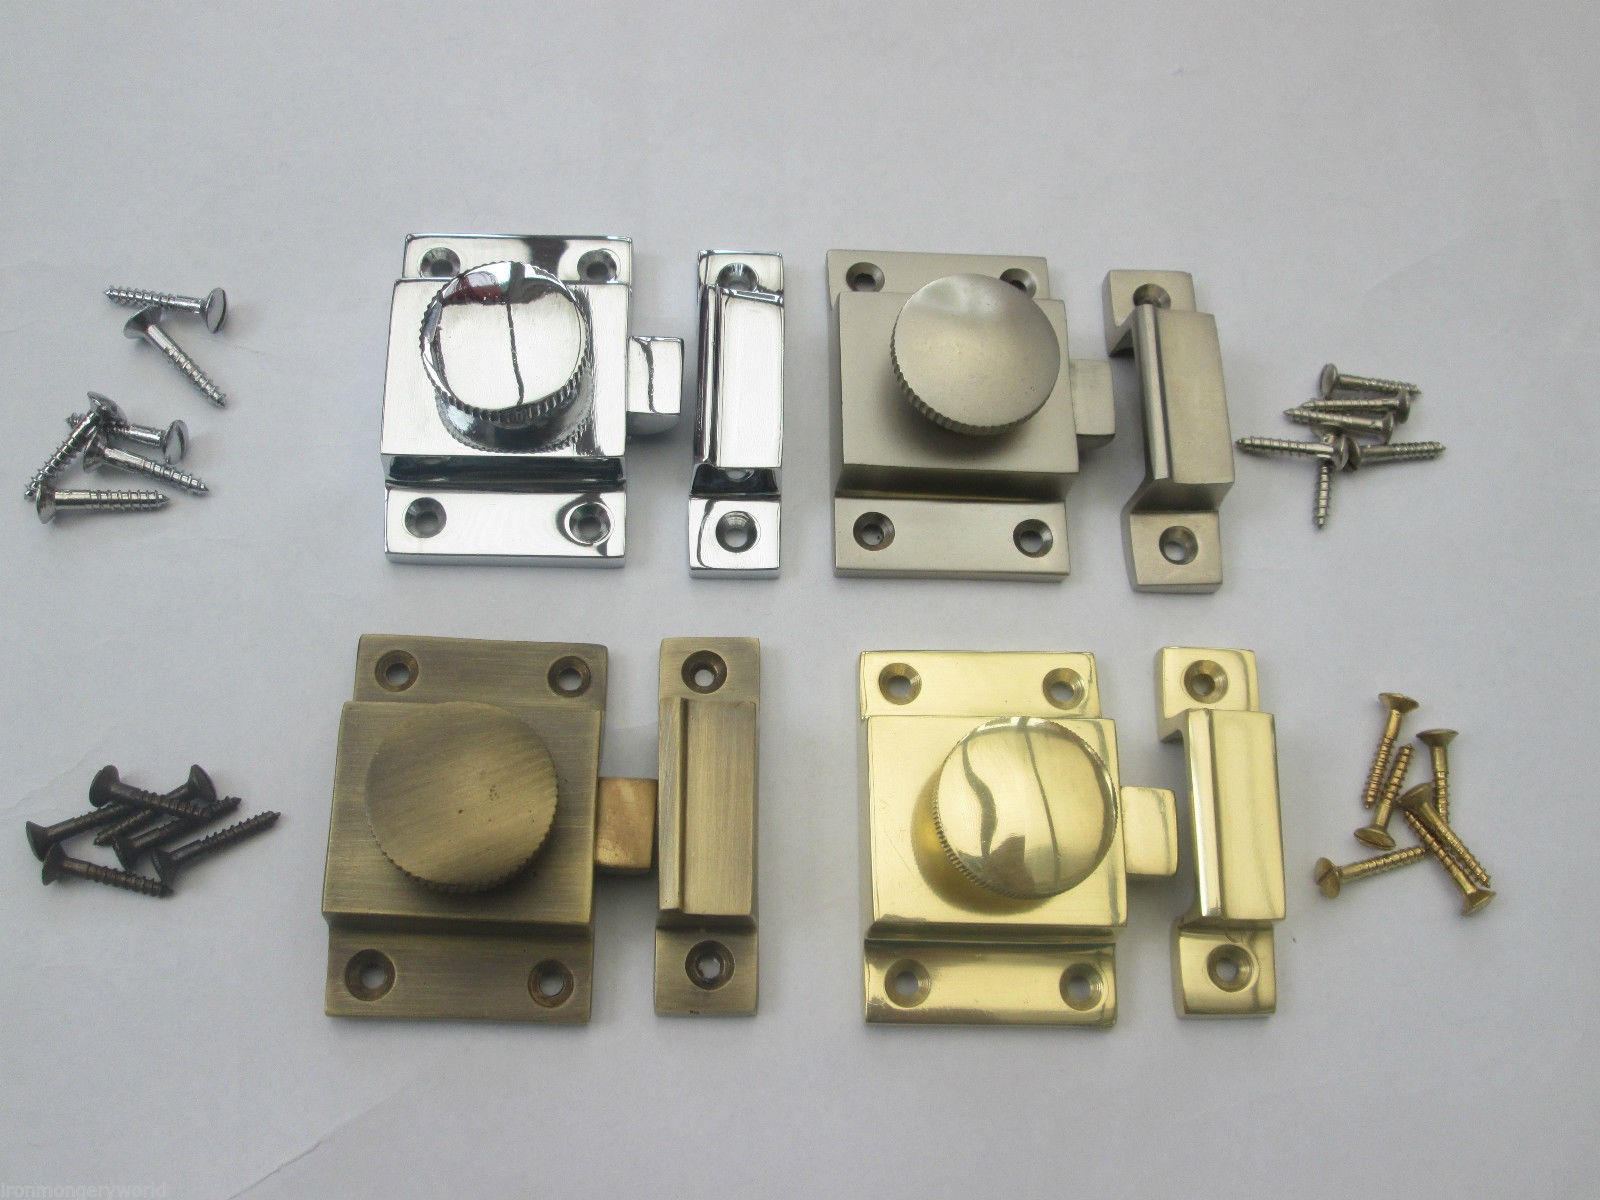 quality hebden catches cupboard productgrp latch hardware filename holding image webcat at